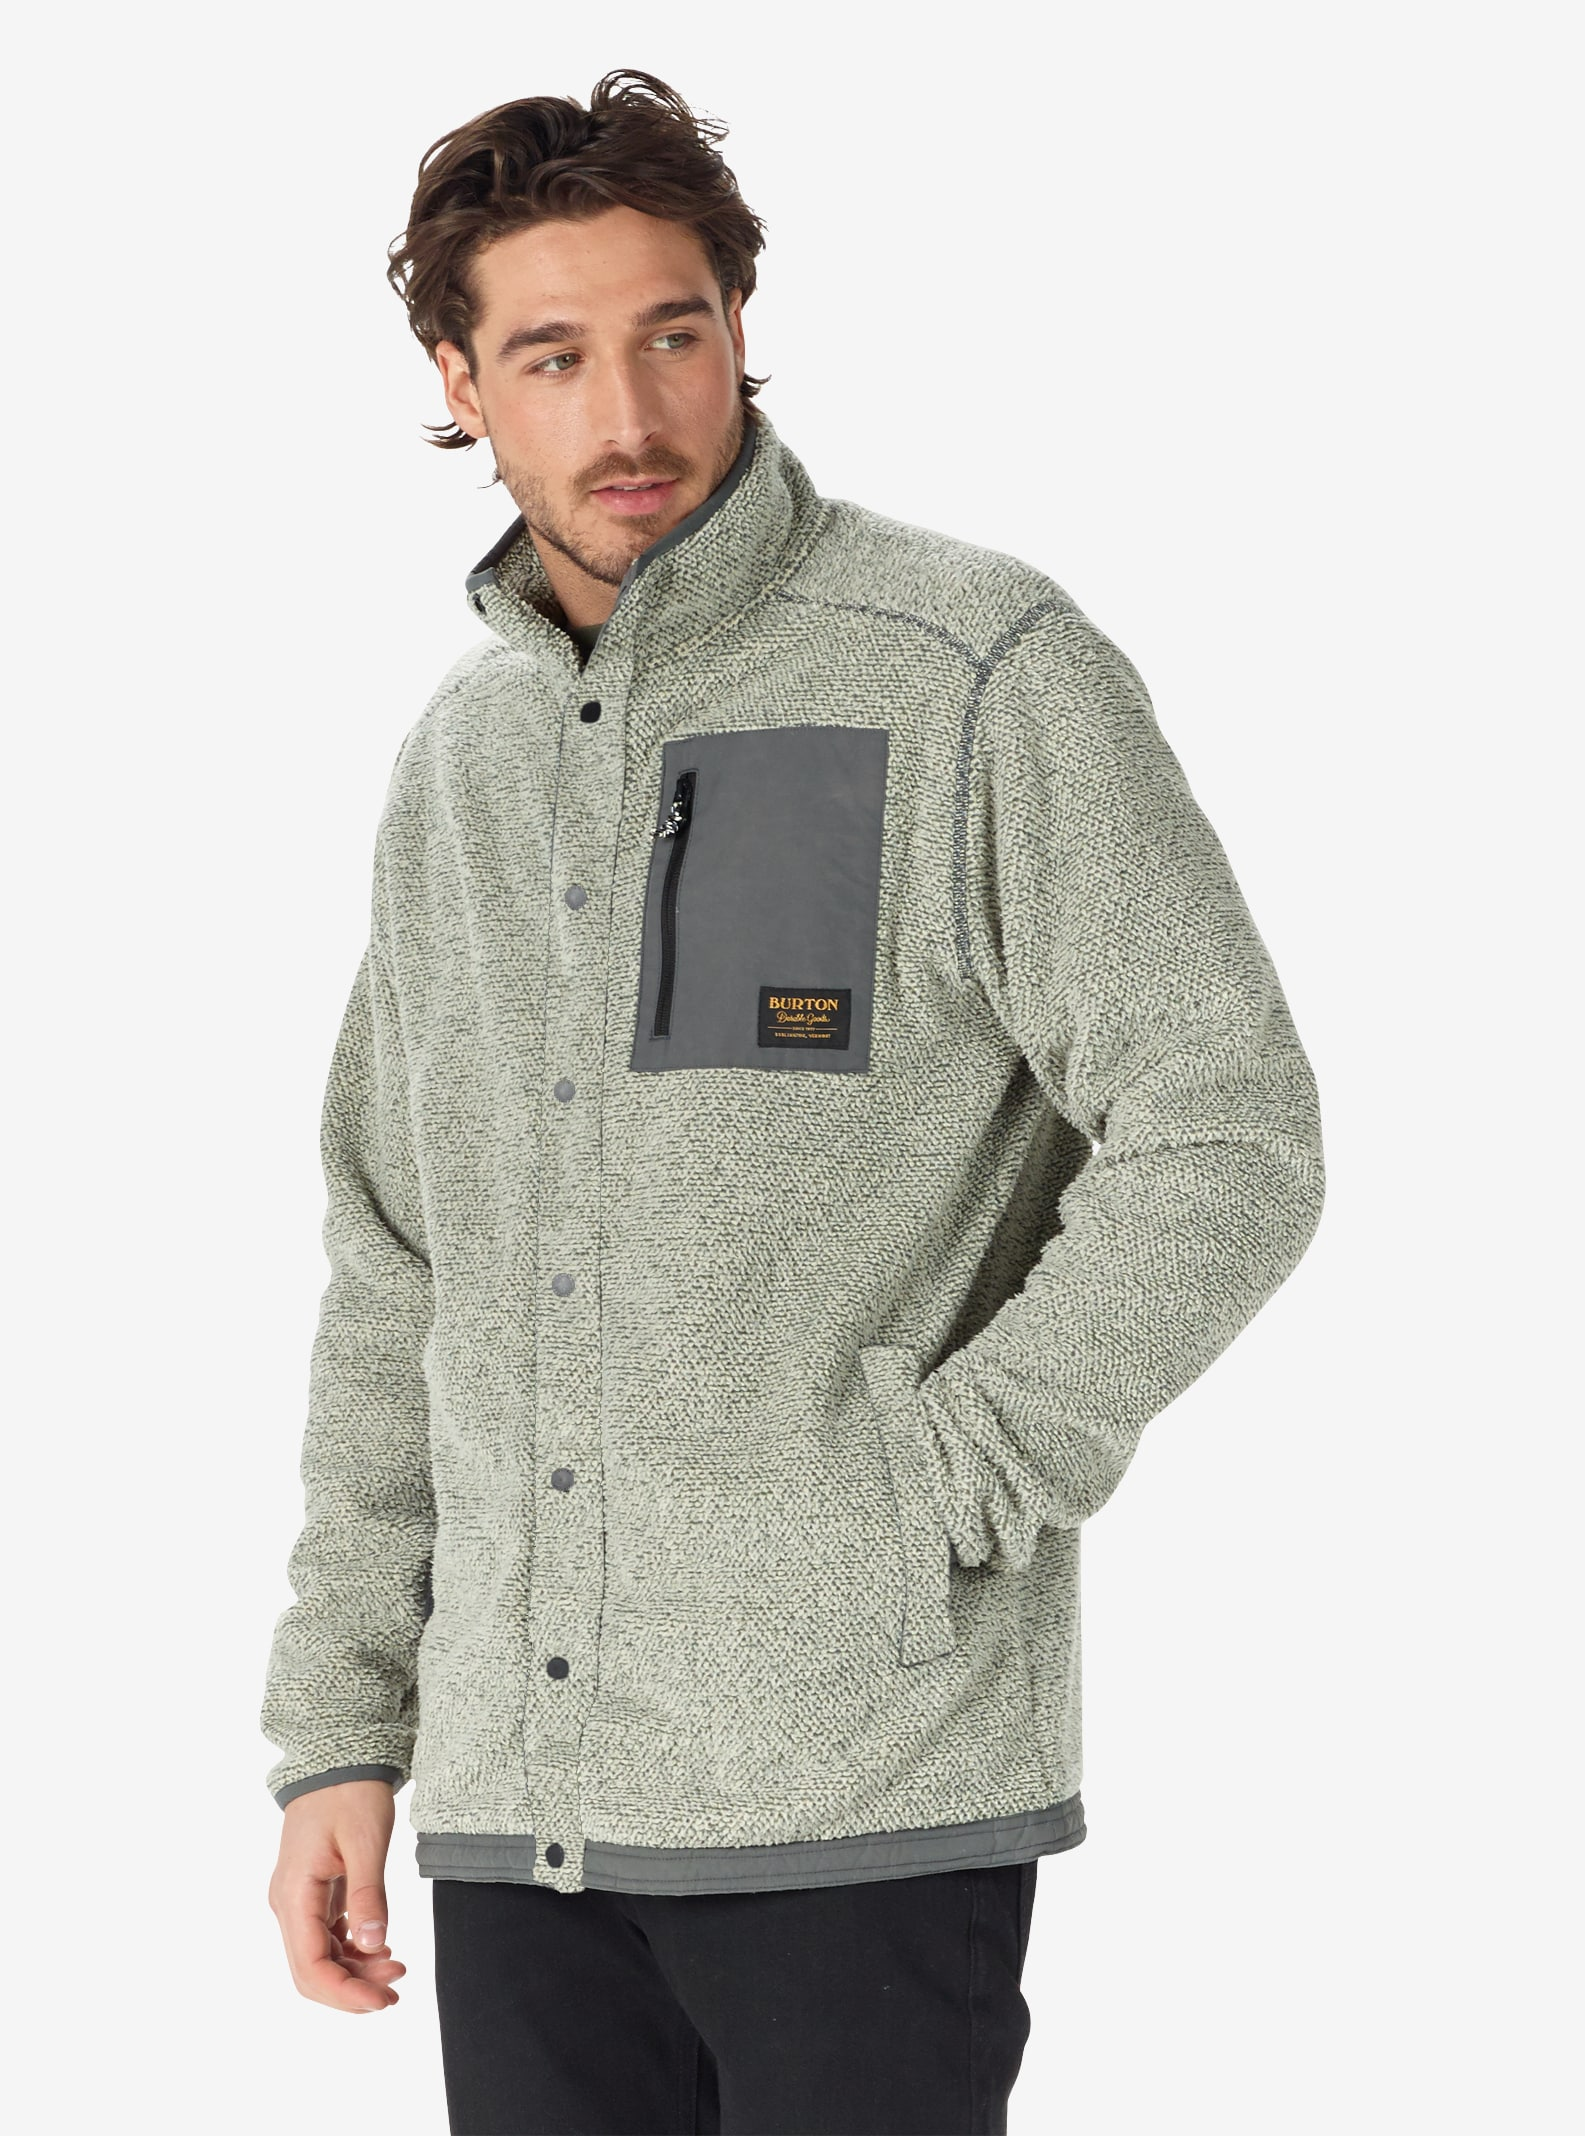 Men's Burton Hearth Snap-Up Fleece shown in Faded Heather